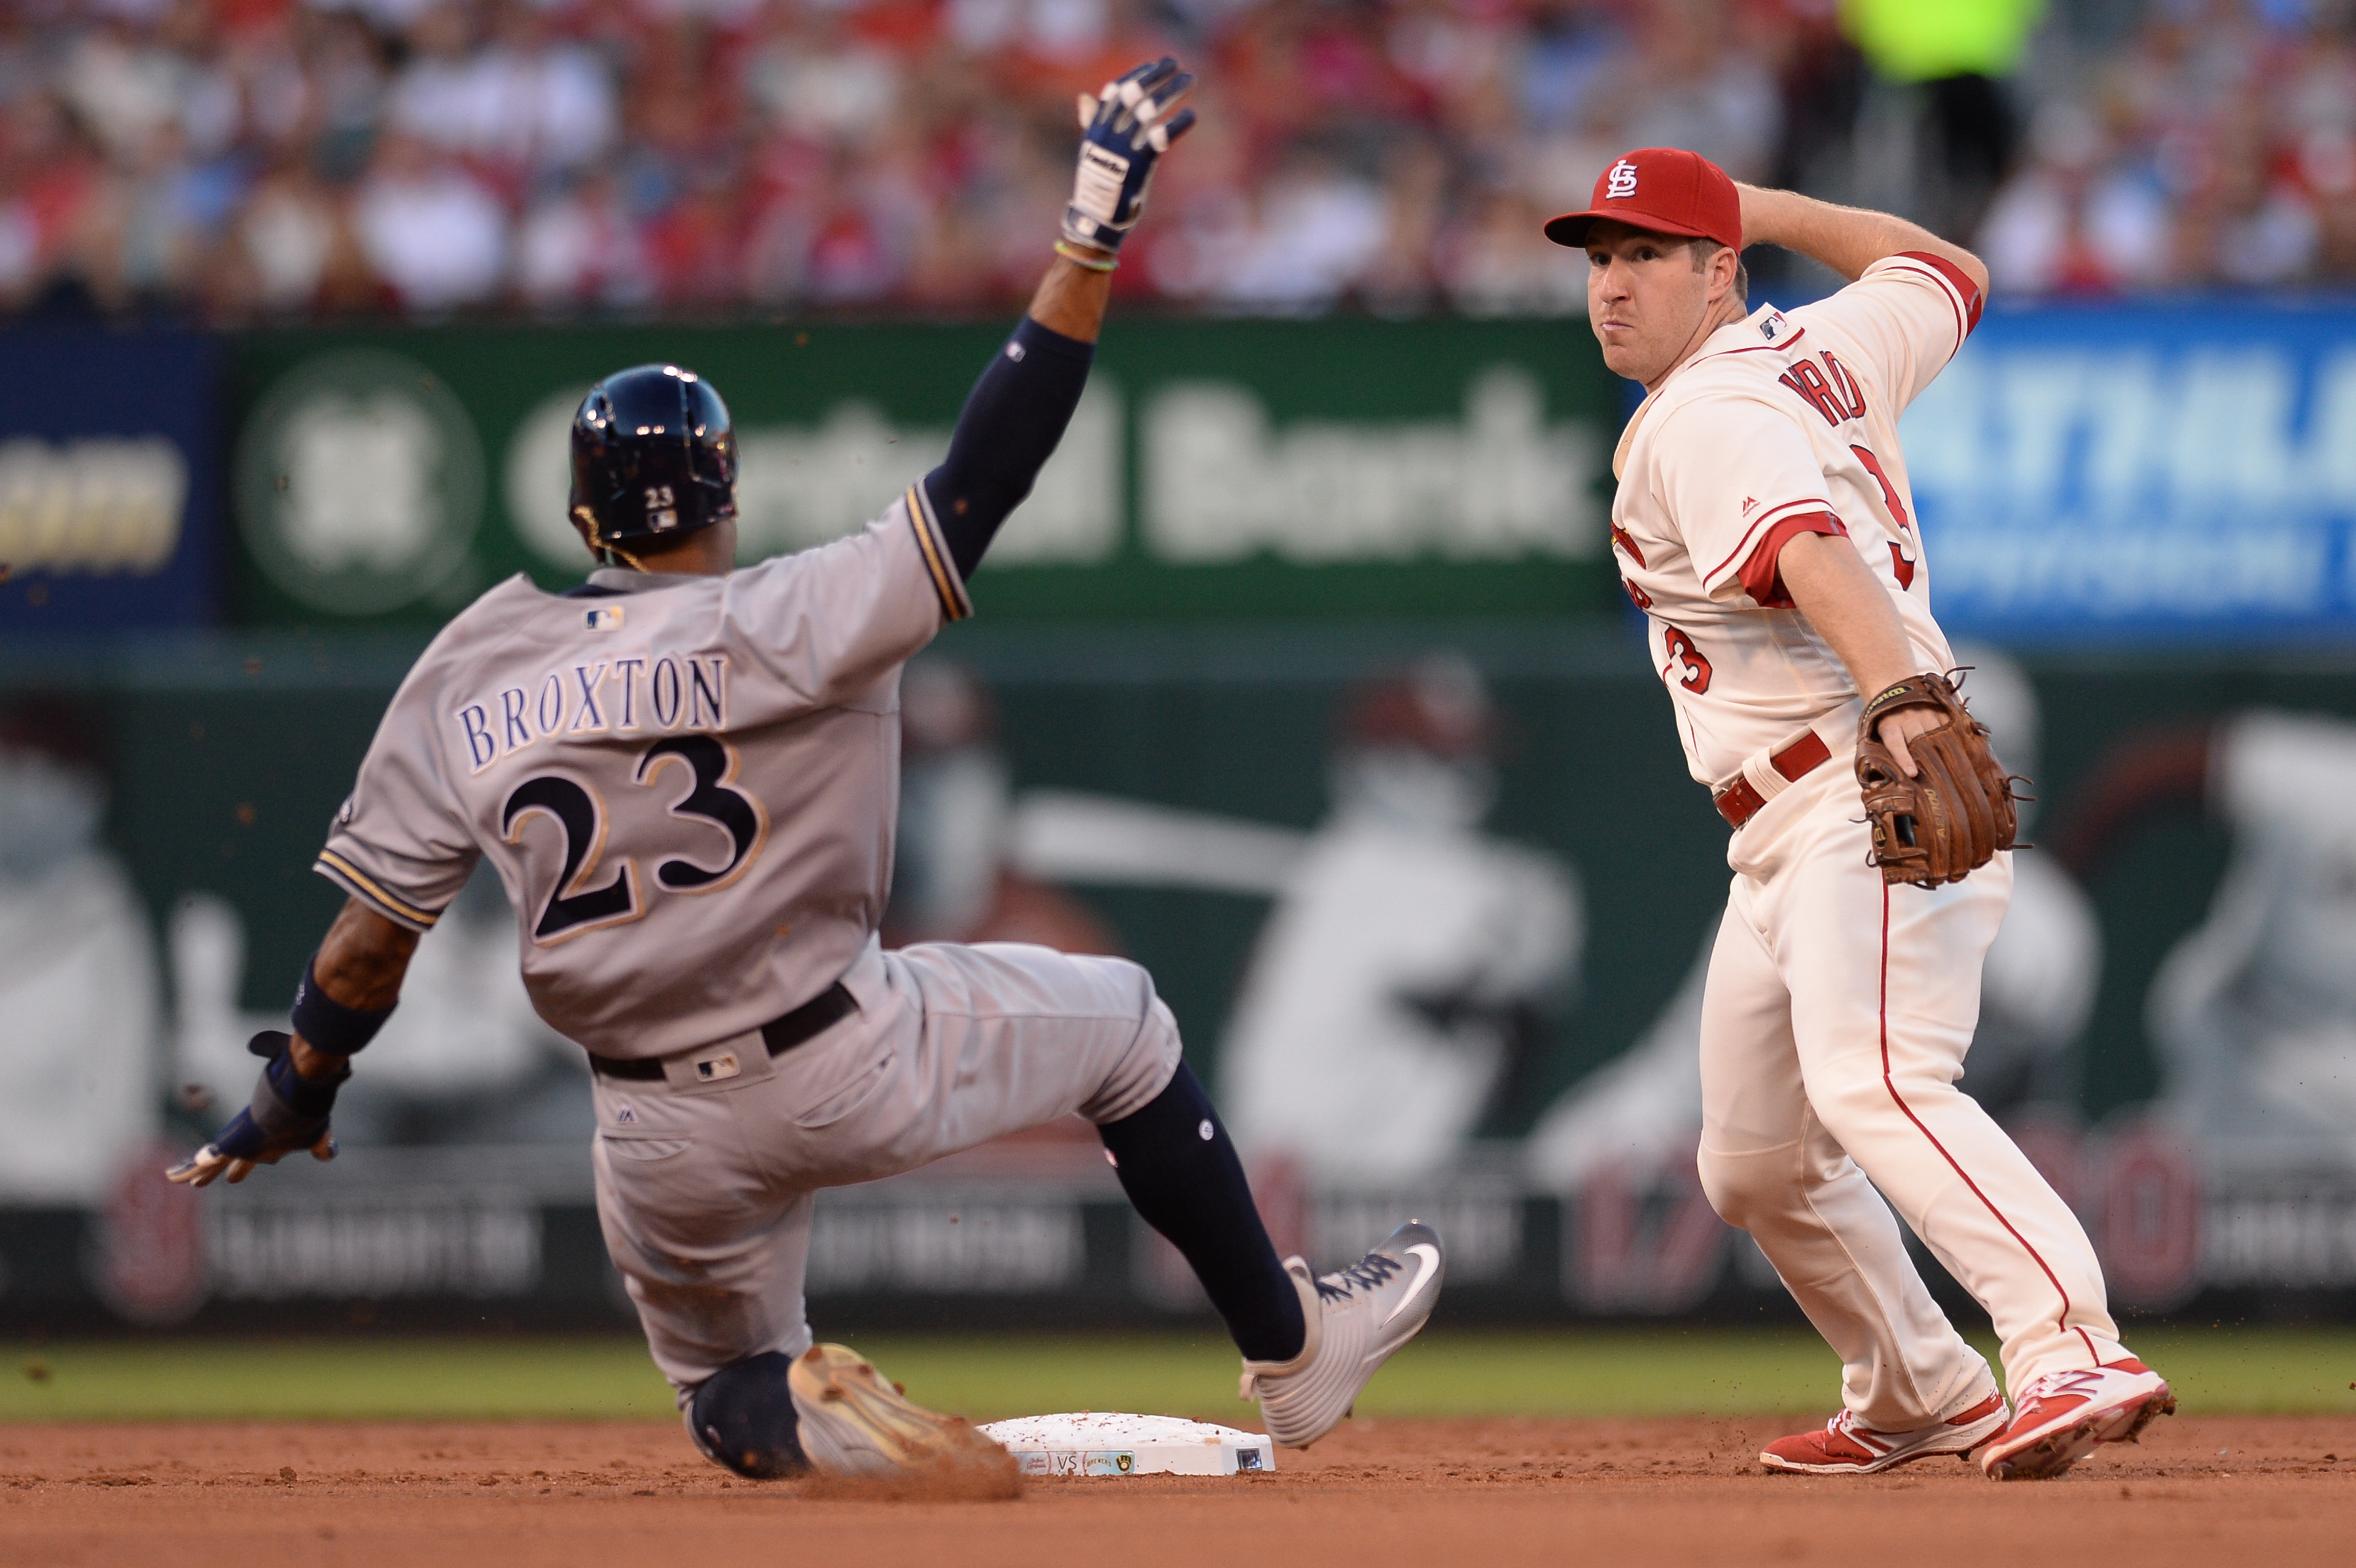 St. Louis Cardinals shortstop Jedd Gyorko (3) turns a double play as Milwaukee Brewers' Keon Broxton (23) slides into second base during the second inning of a baseball game between the St. Louis Cardinals and the Milwaukee Brewers on Saturday, Sep. 10, 2